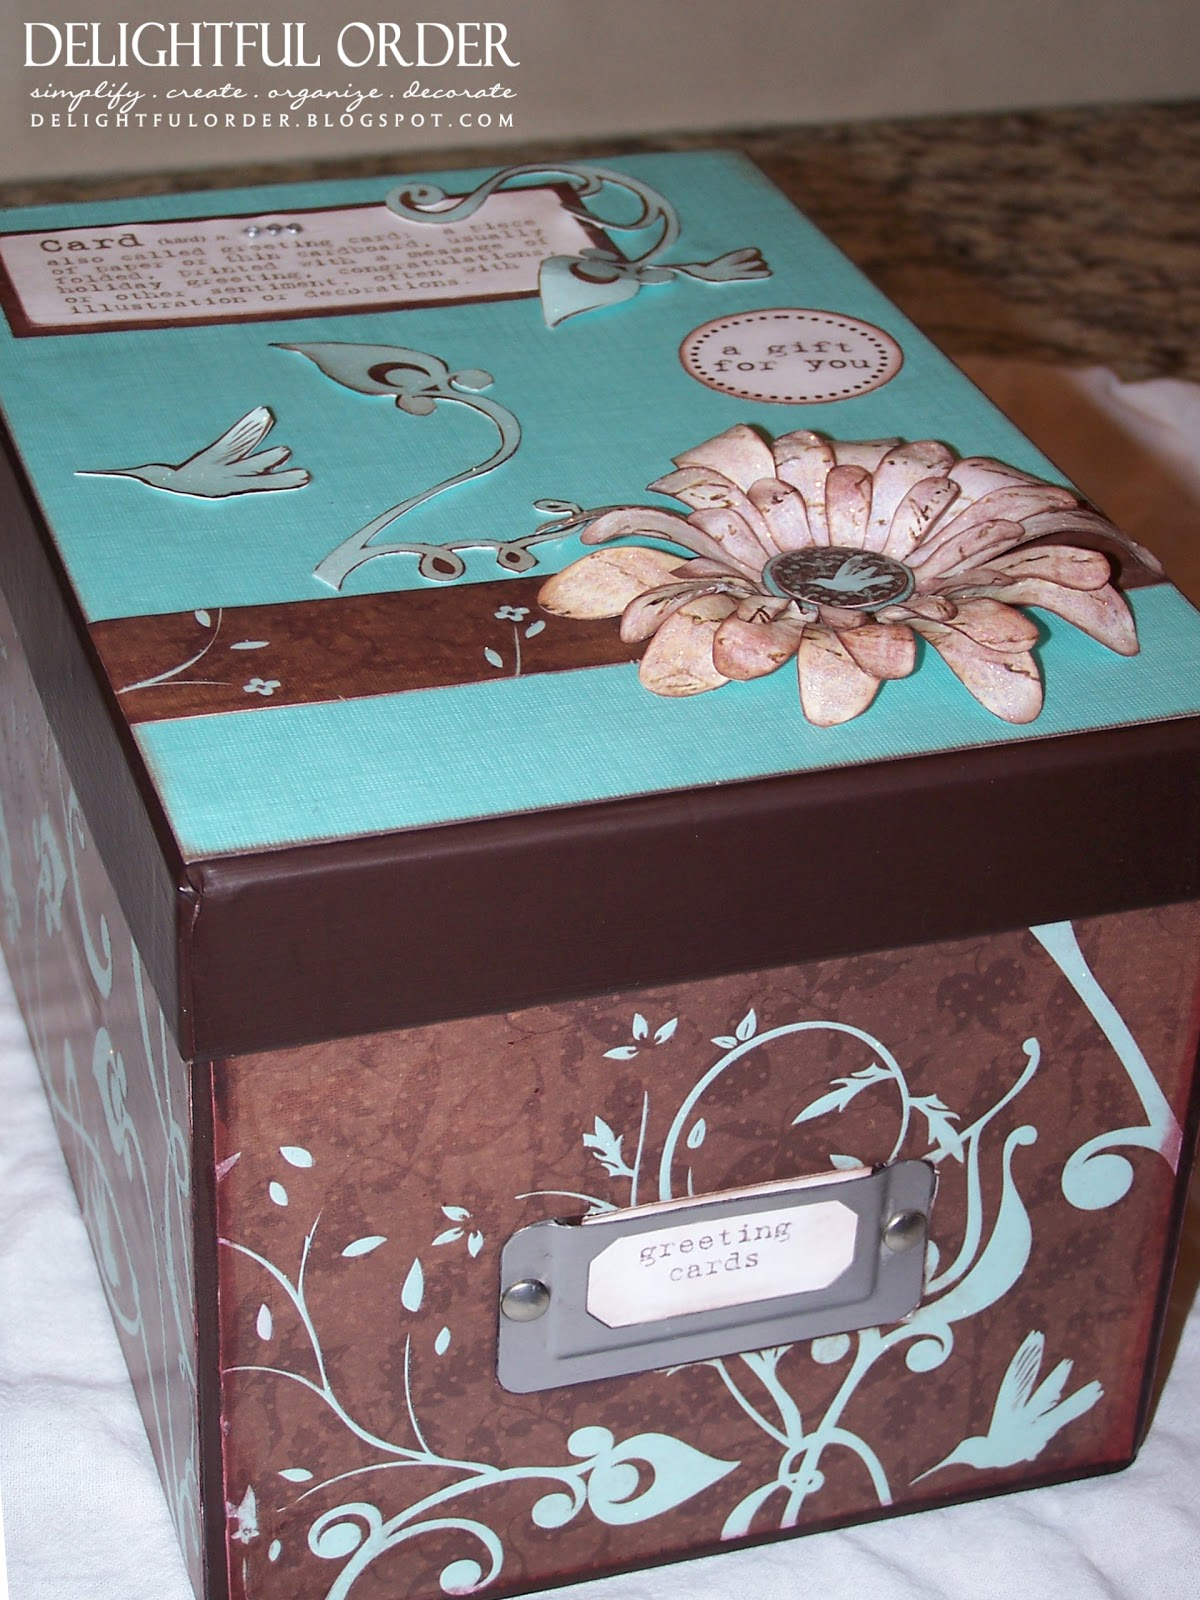 Delightful order greeting card box gift idea greeting card box gift idea m4hsunfo